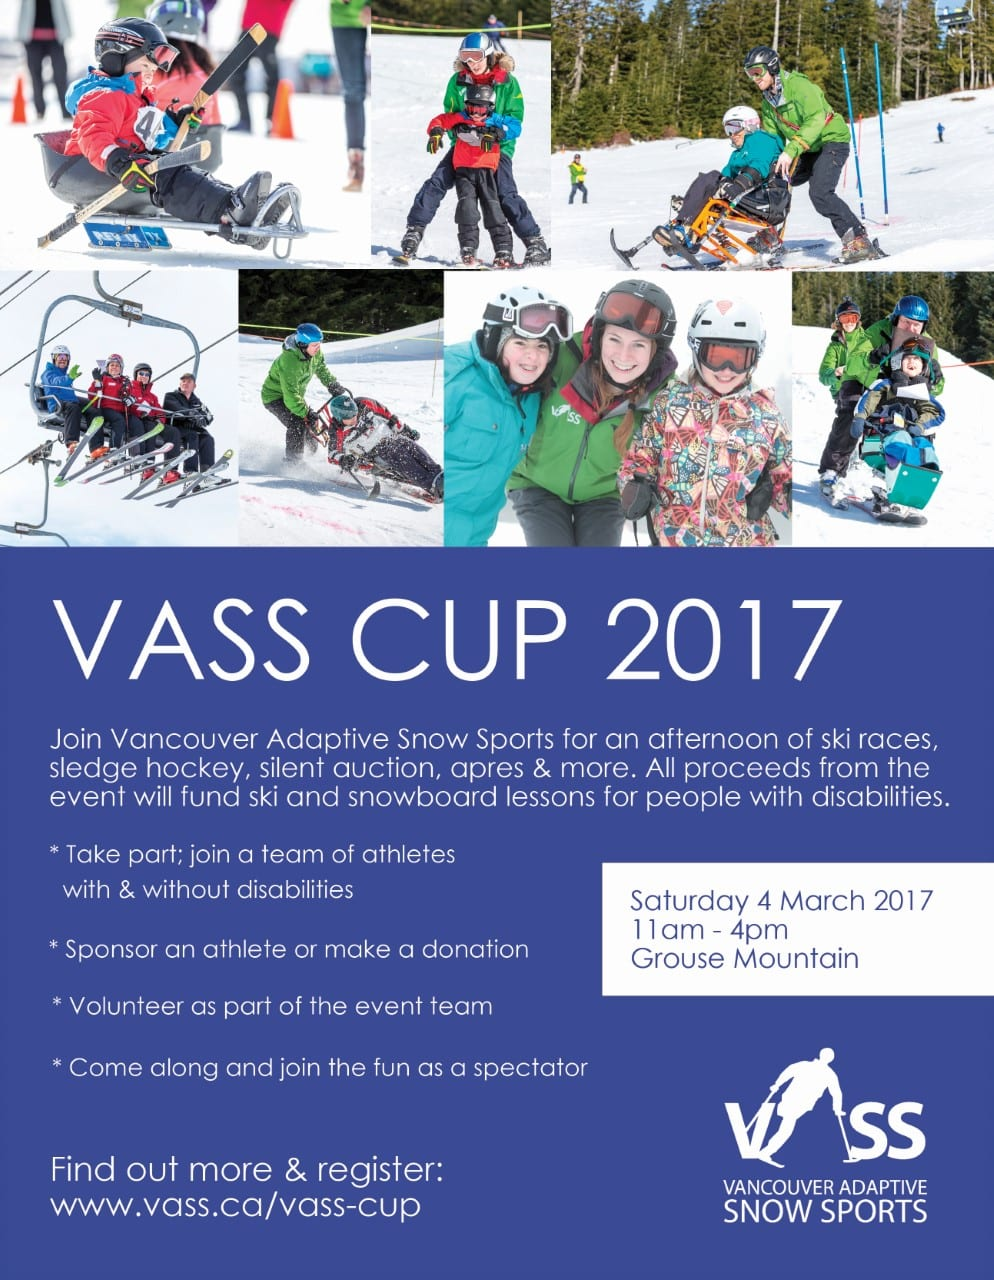 VASS CUP 2017 on Grouse Mountain North Vancouver